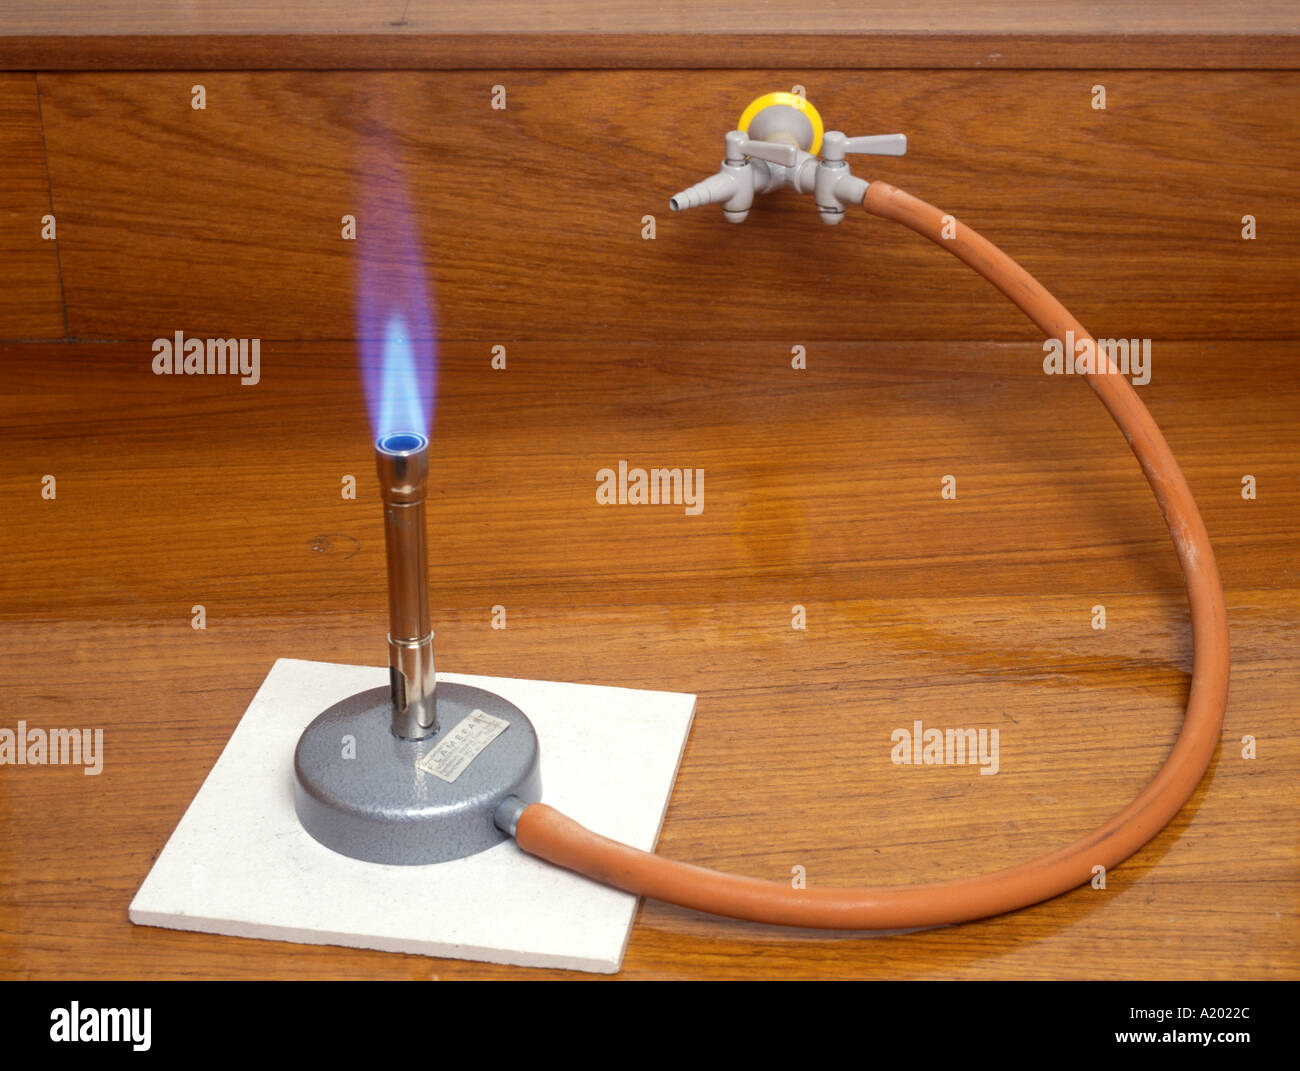 Bunsen Burner With A Roaring Blue Flame When The Air Hole